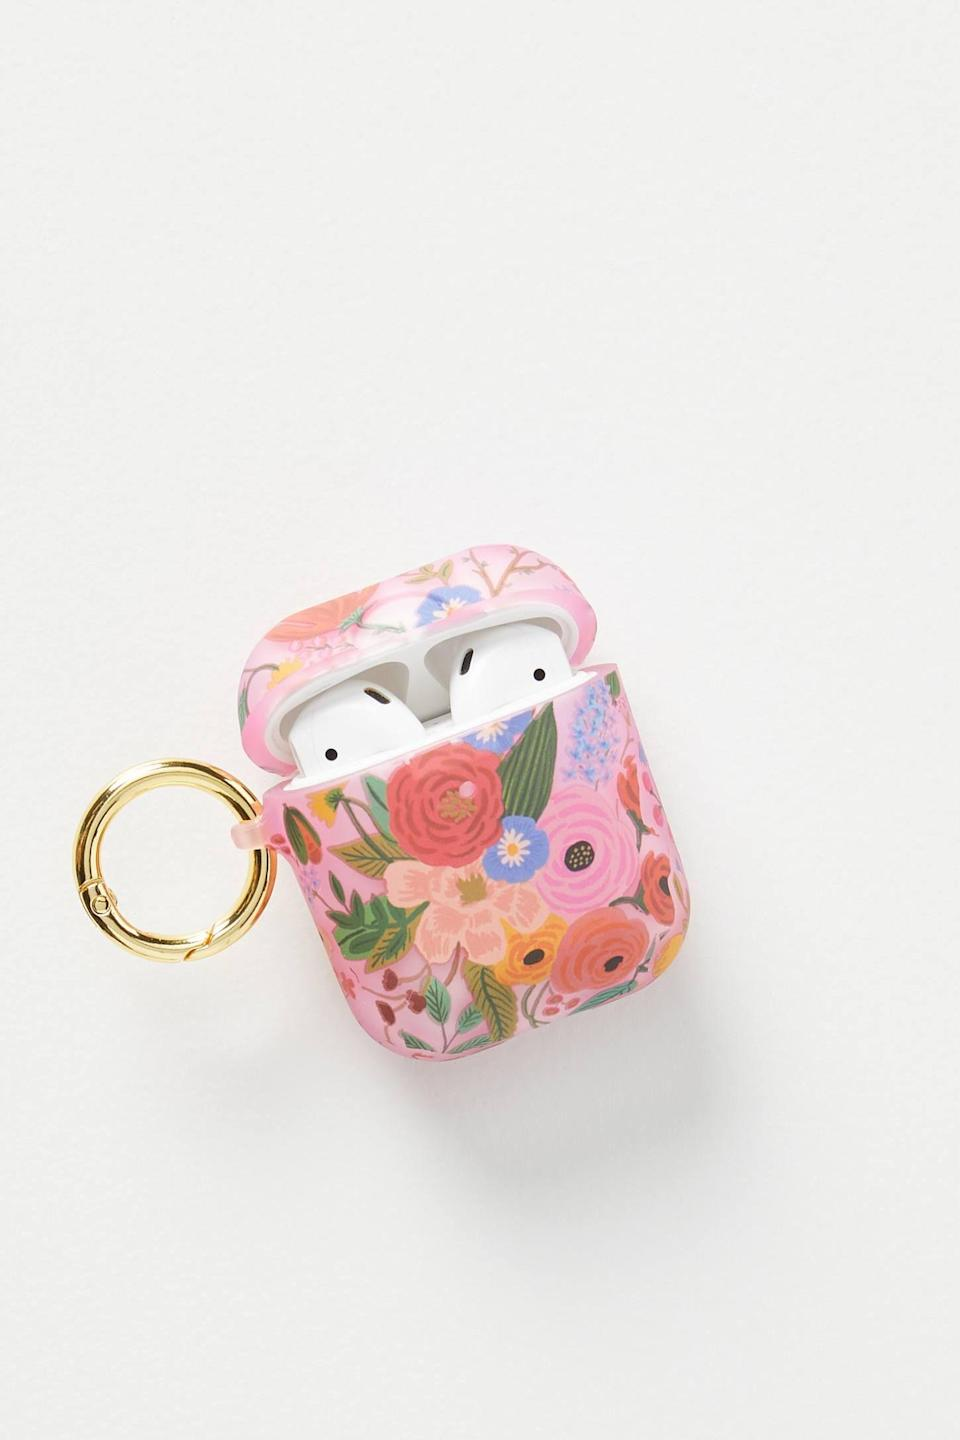 """<p><strong>Rifle Paper Co. Anthropologie</strong></p><p>anthropologie.com</p><p><strong>$26.00</strong></p><p><a href=""""https://go.redirectingat.com?id=74968X1596630&url=https%3A%2F%2Fwww.anthropologie.com%2Fshop%2Frifle-paper-co-airpods-case&sref=https%3A%2F%2Fwww.thepioneerwoman.com%2Fholidays-celebrations%2Fgifts%2Fg33985357%2Fbest-gifts-for-mom%2F"""" rel=""""nofollow noopener"""" target=""""_blank"""" data-ylk=""""slk:Shop Now"""" class=""""link rapid-noclick-resp"""">Shop Now</a></p><p>If she's never without her AirPods, she'll adore a cute accessory like this one. It'll keep her favorite gadget safe and give it a stylish upgrade all at once.</p>"""